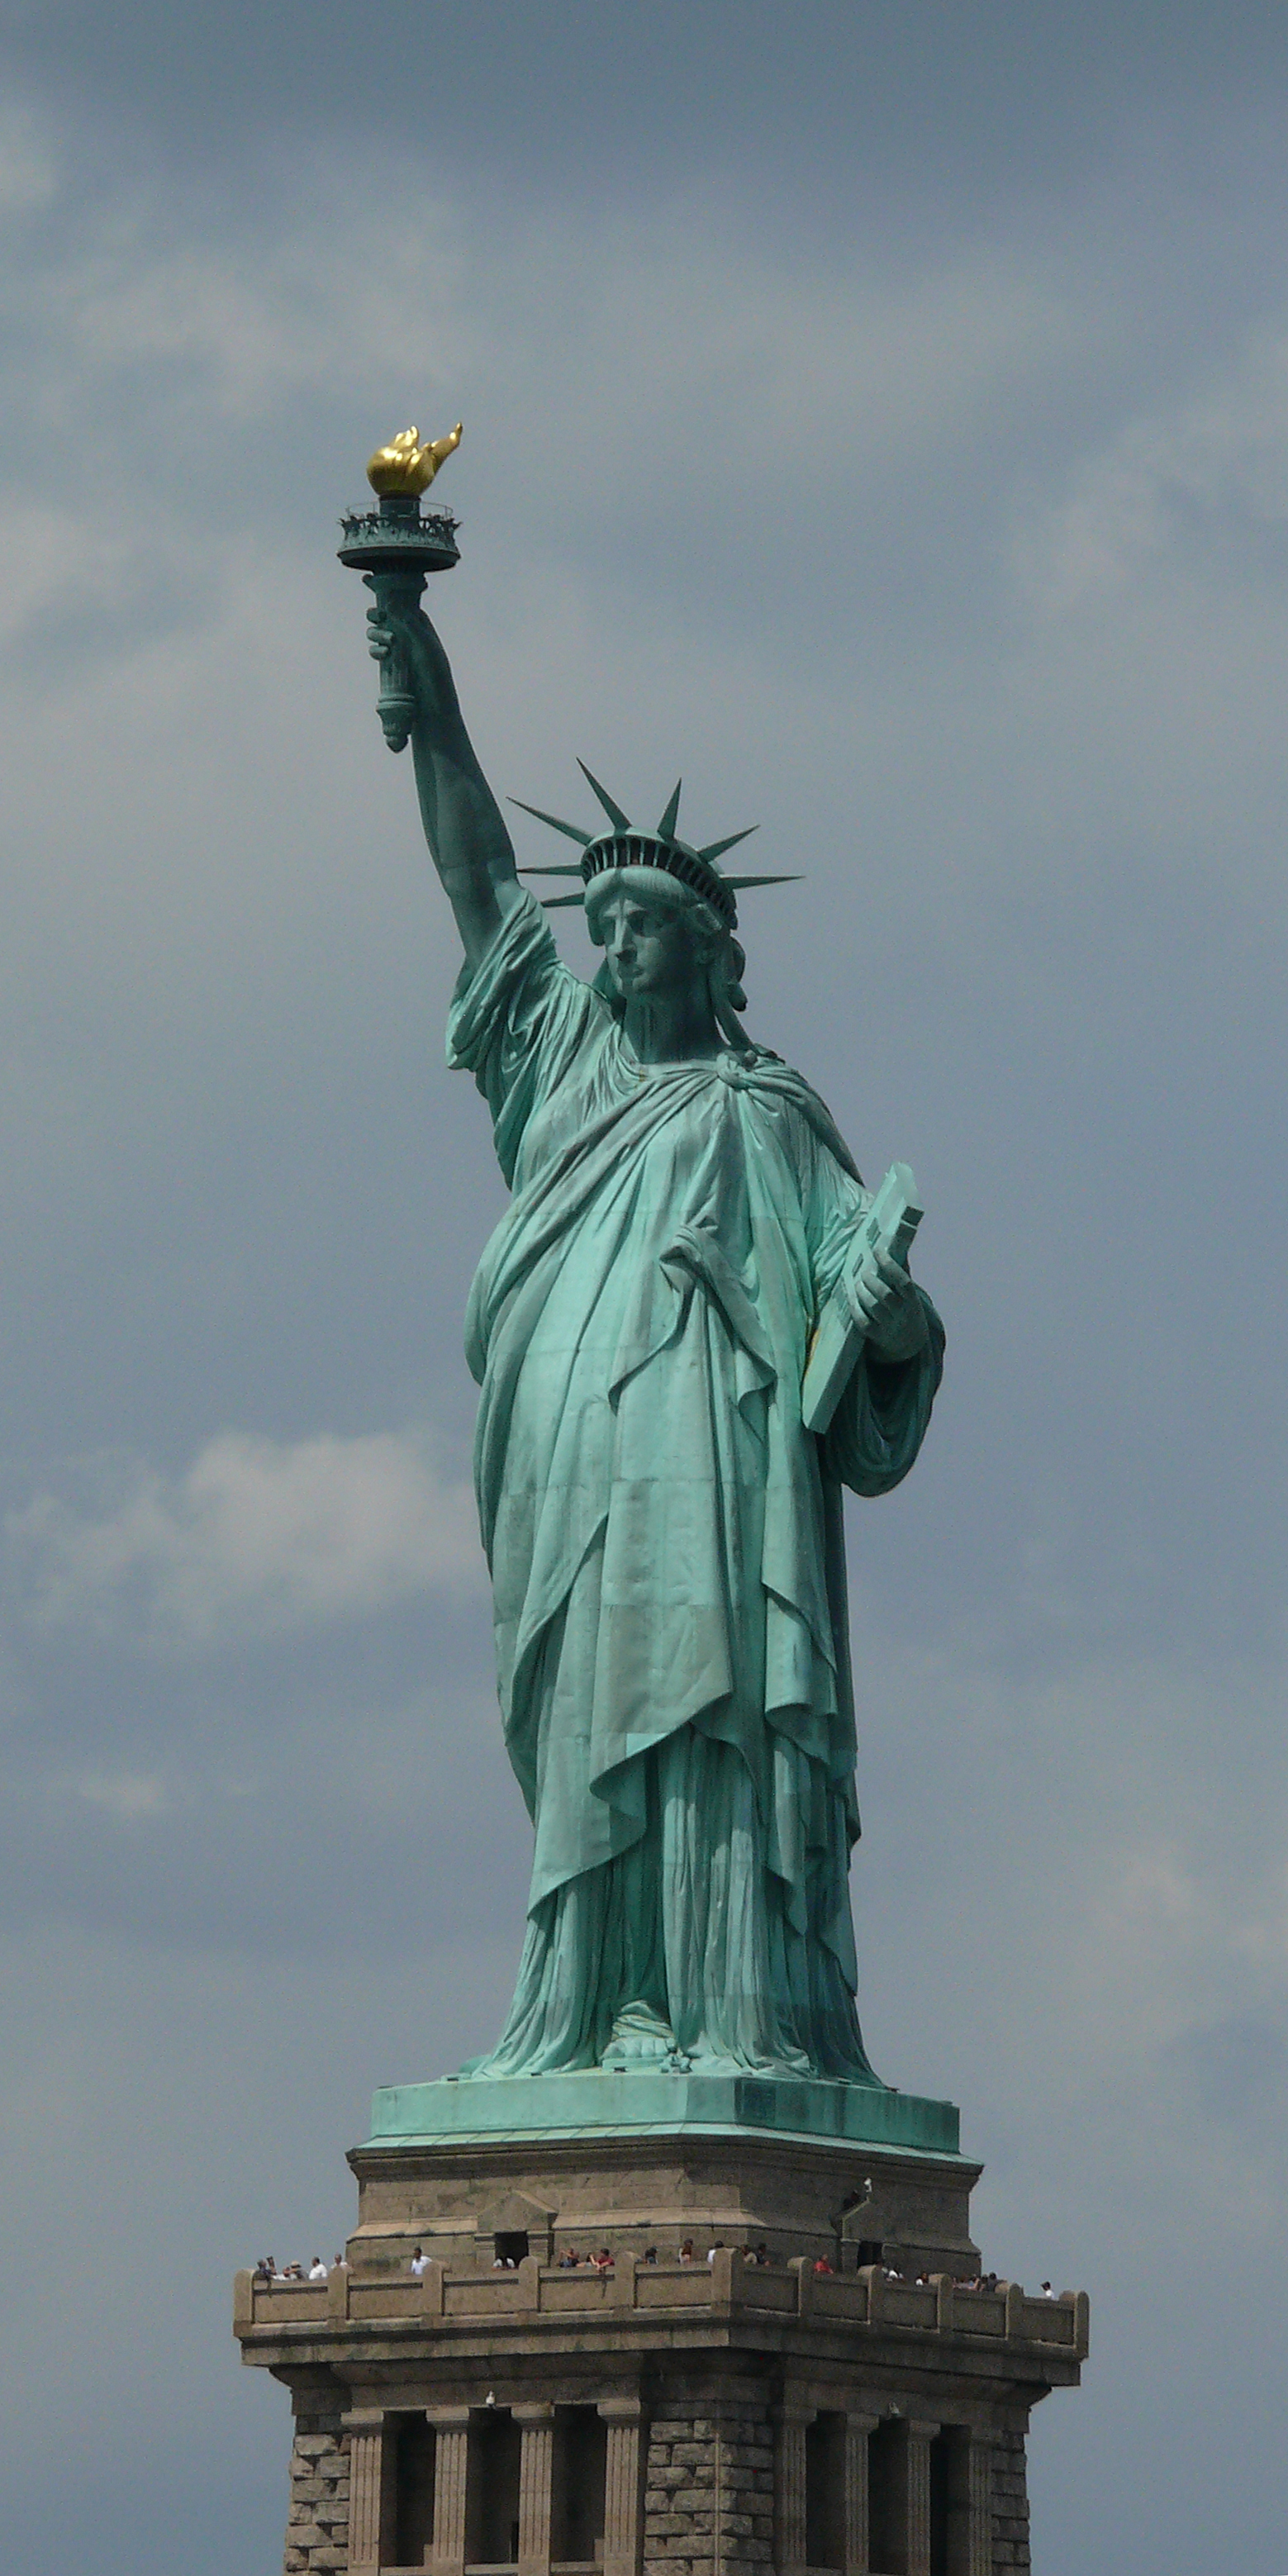 The Statue of Liberty: A Symbol of Freedom and French-American Friendship